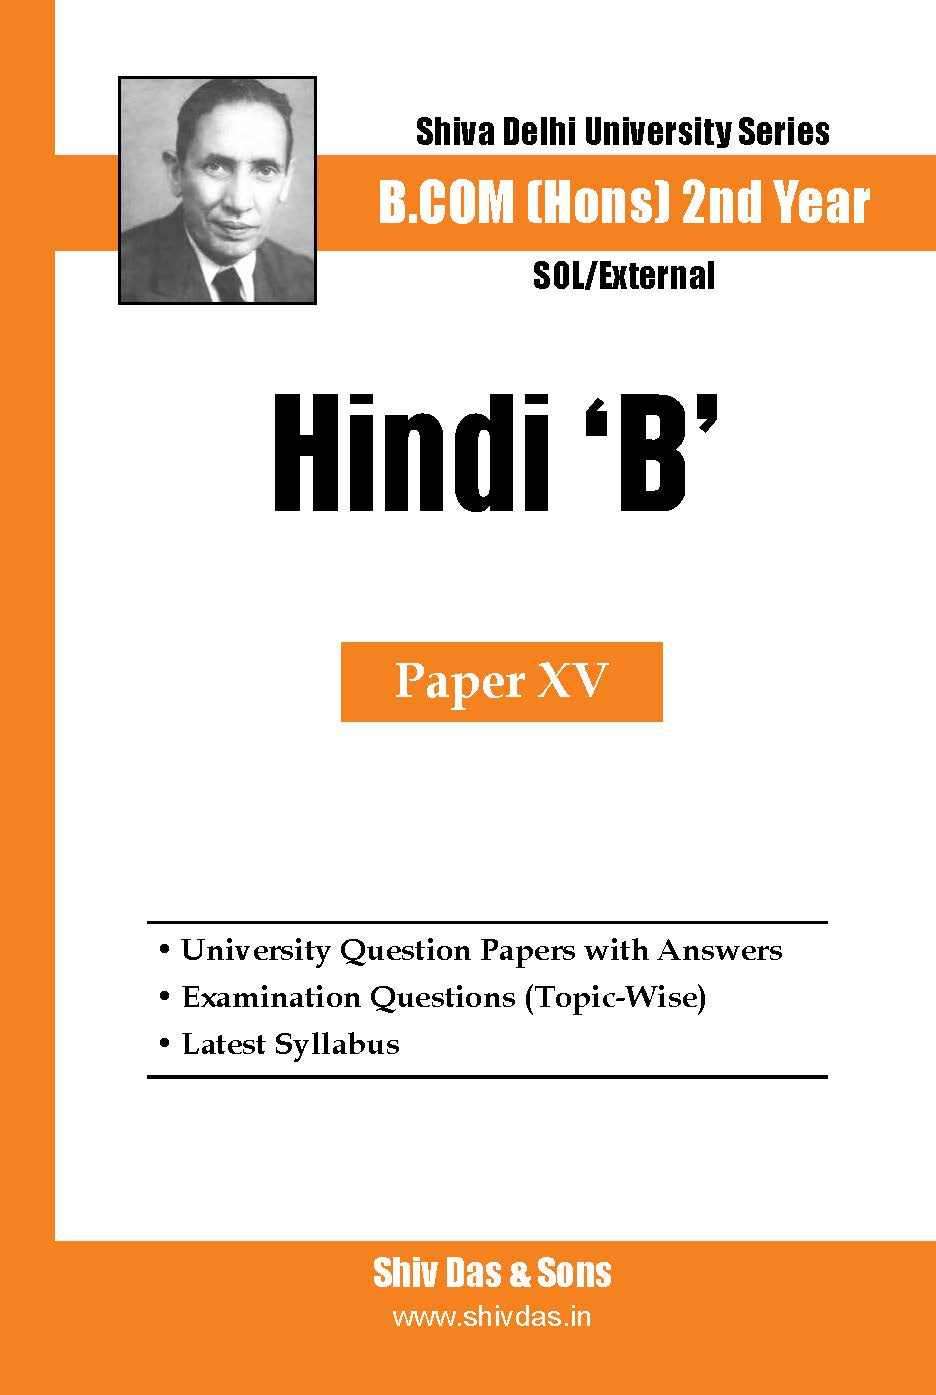 B.Com Hons-SOL/External-2nd Year-Hindi-B-Shiv Das-Delhi University Series